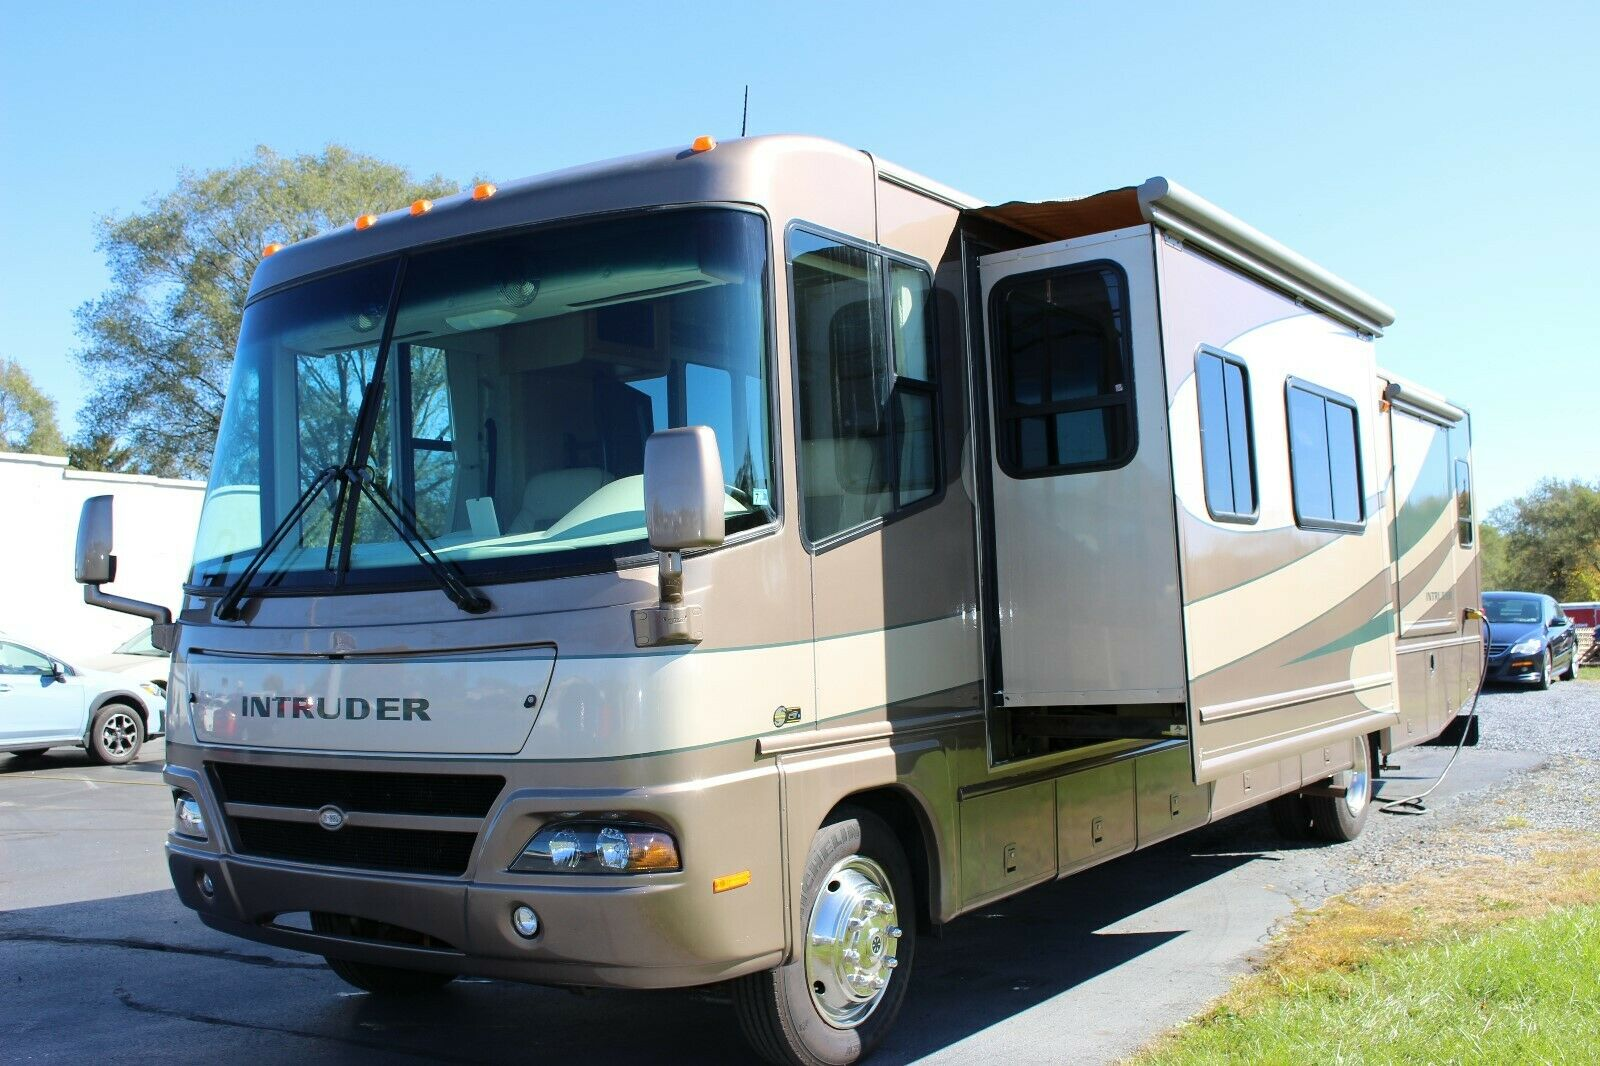 low miles 2005 Damon Intruder 391 camper